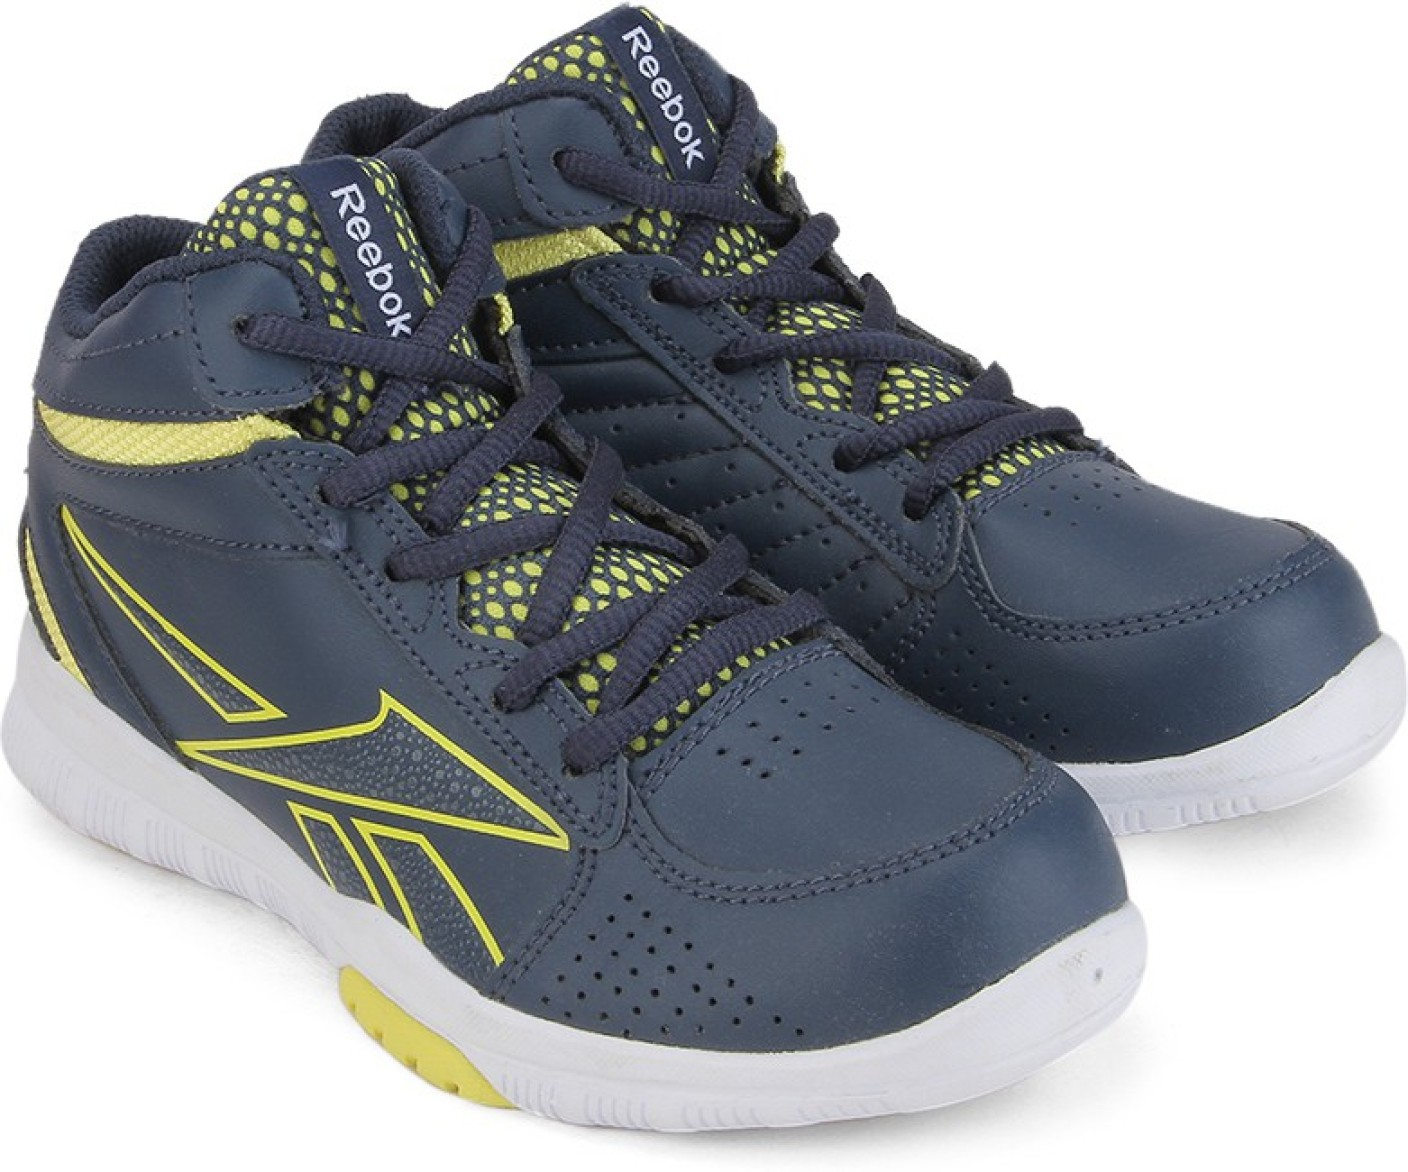 REEBOK Boys & Girls Price in India - Buy REEBOK Boys ...